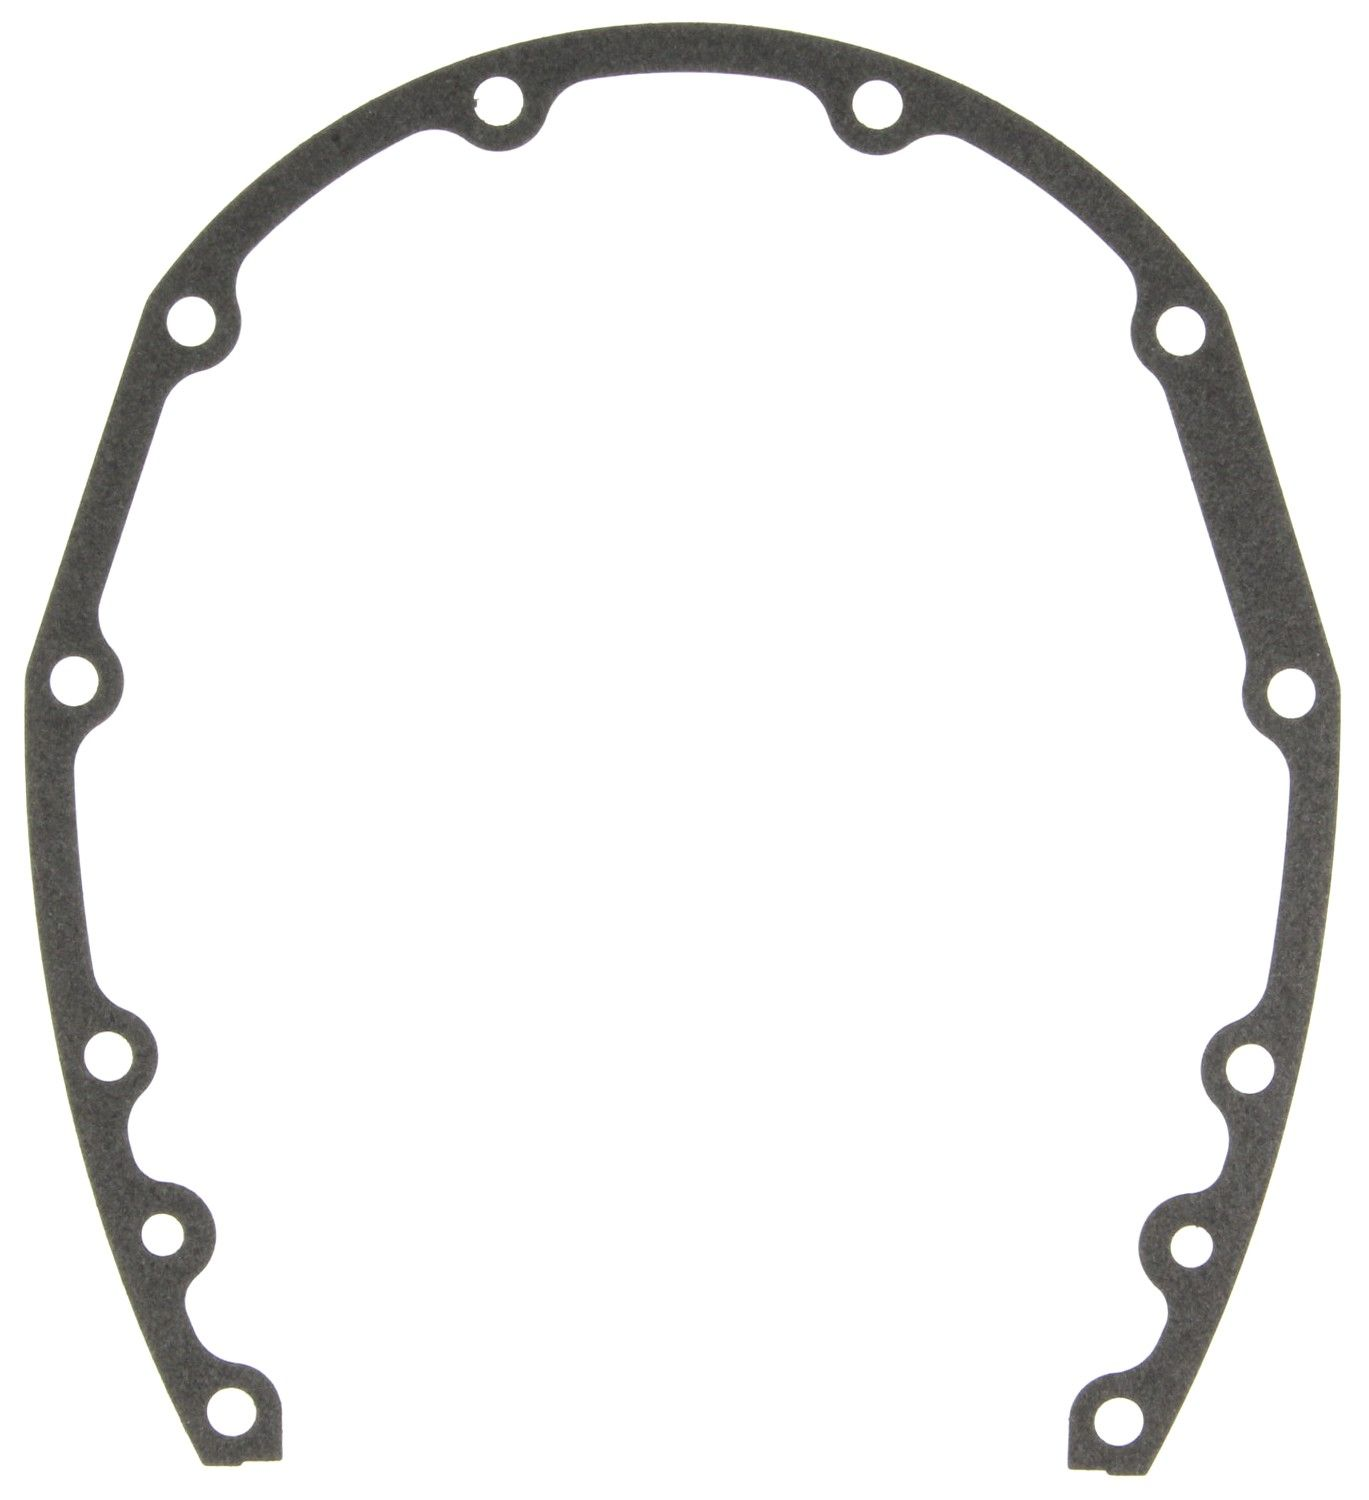 1992 Mercedes Benz 190 E Head Gasket: Engine Timing Cover Gasket Replacement (ACDelco, Ajusa